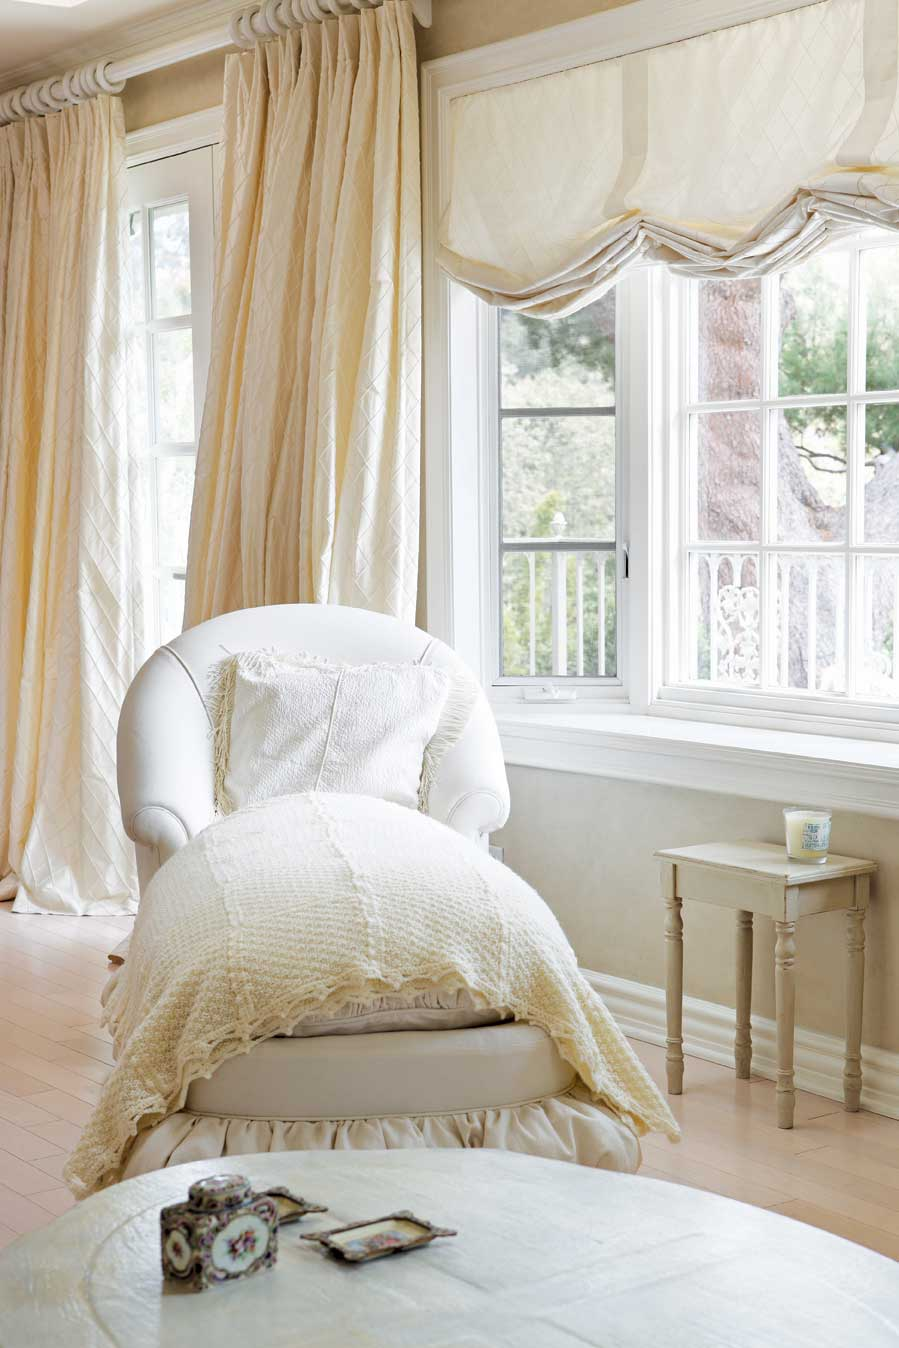 Romantic Bedroom For Her White Romantic Bedroom Design And Decorating Ideas